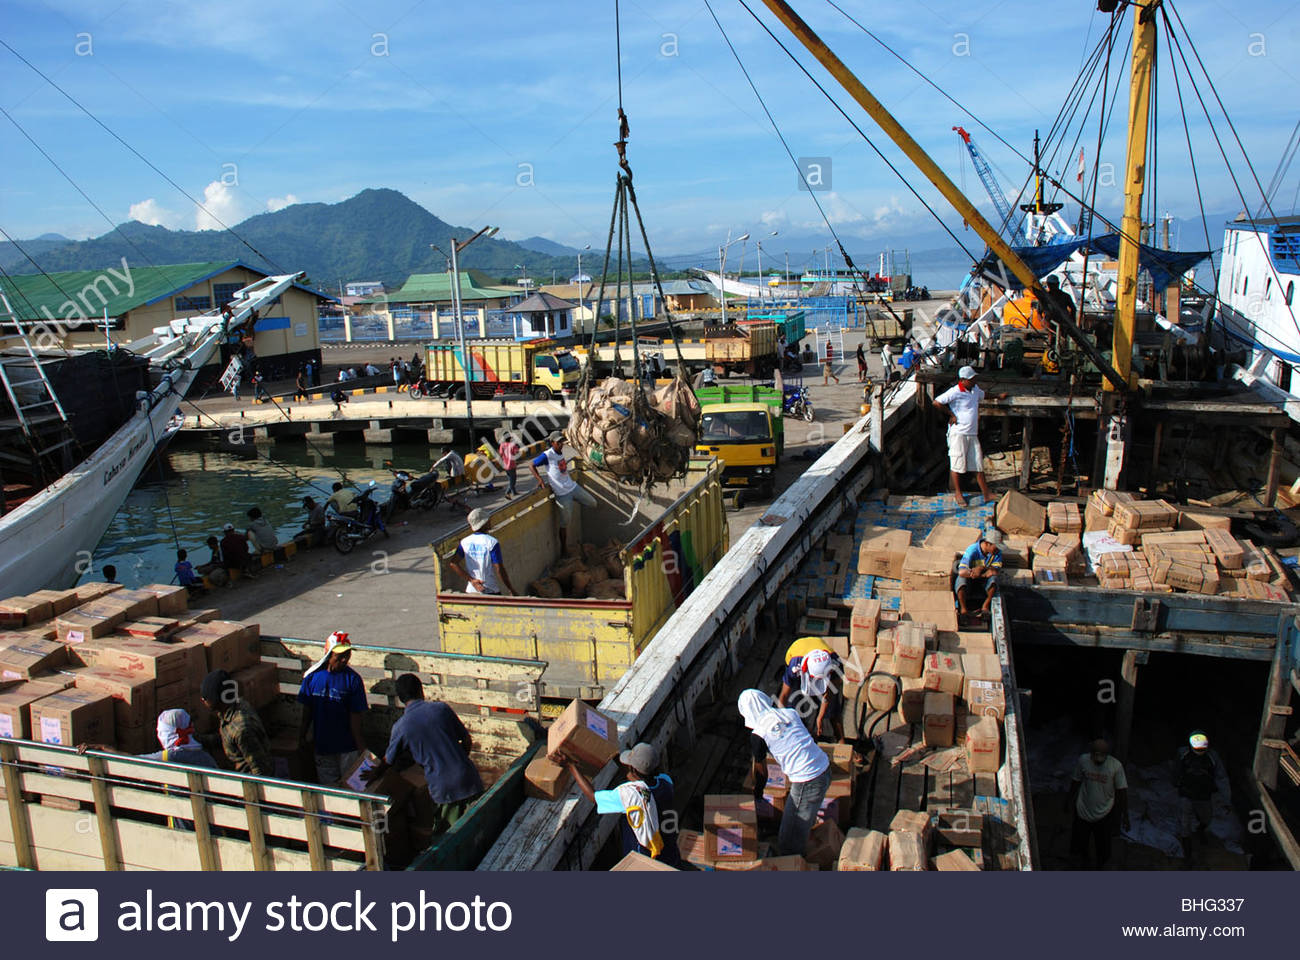 Man helps direct a cargo net of cement sacks being lowered into yellow truck on jetty Bima harbor Sumbawa Timur - Stock Image